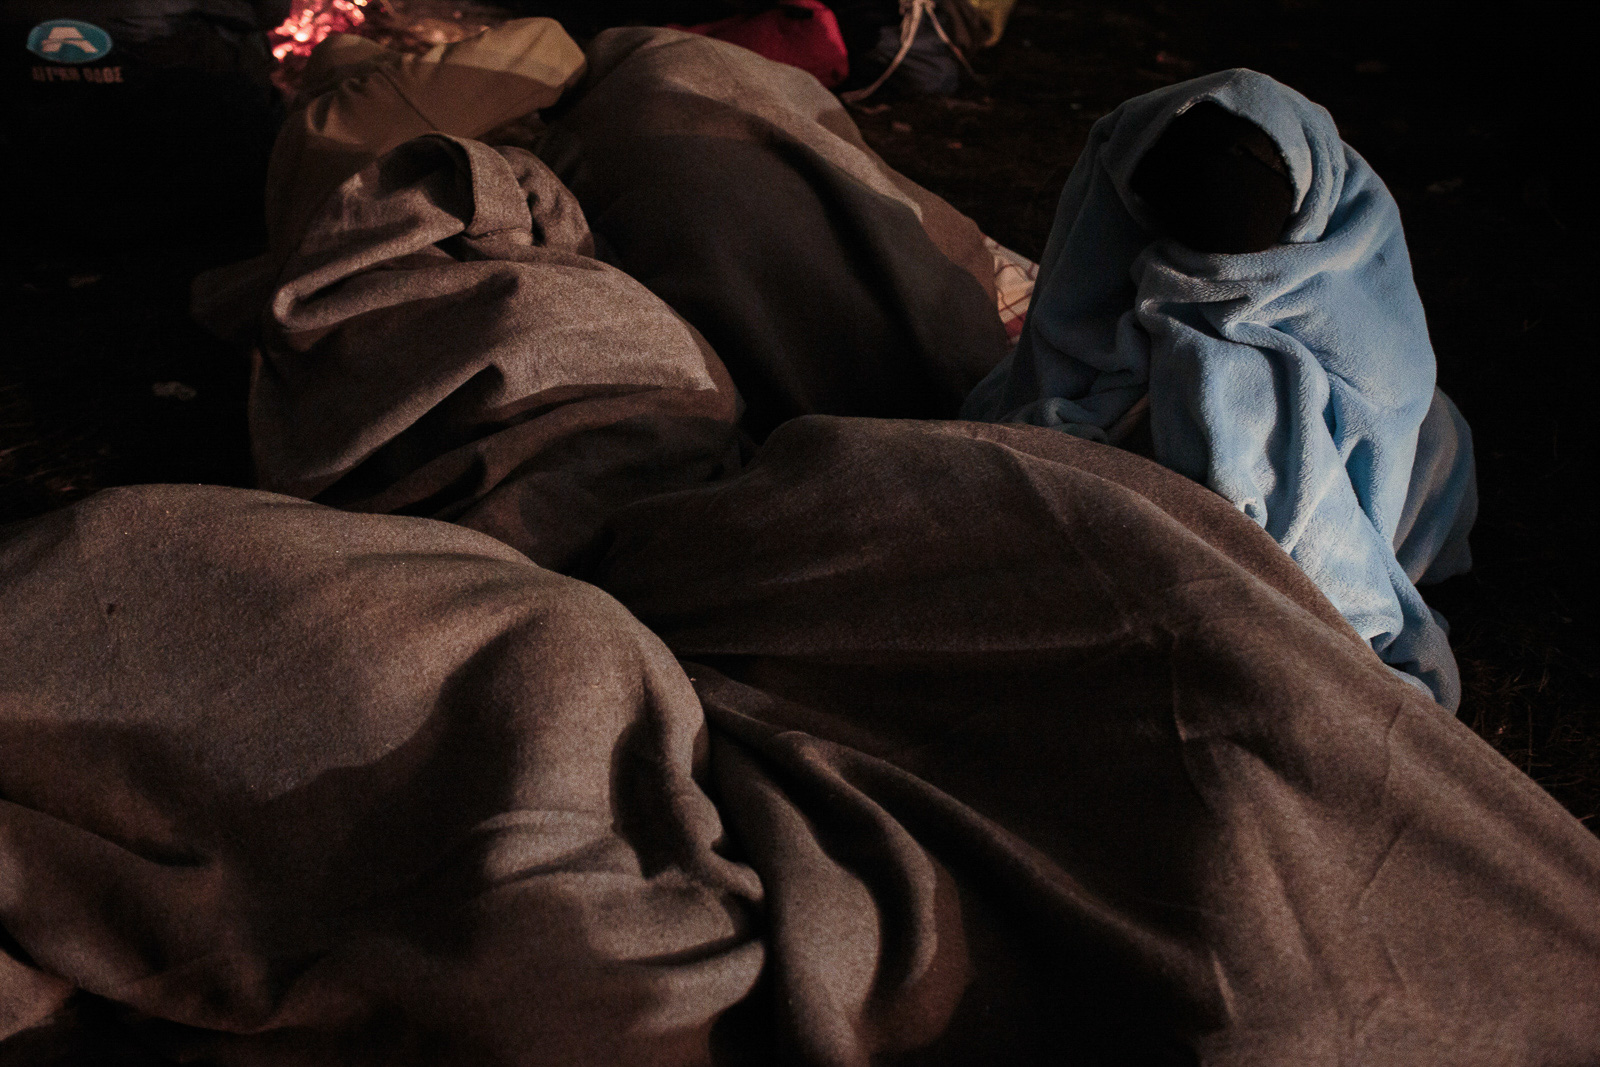 Šentilj, Slovenia - November 2, 2015: A group of refugees is sleeping as they wait to cross into Austira at Sentilj border crossing. The autumn temperatures has reached as low as one degree Celsius.